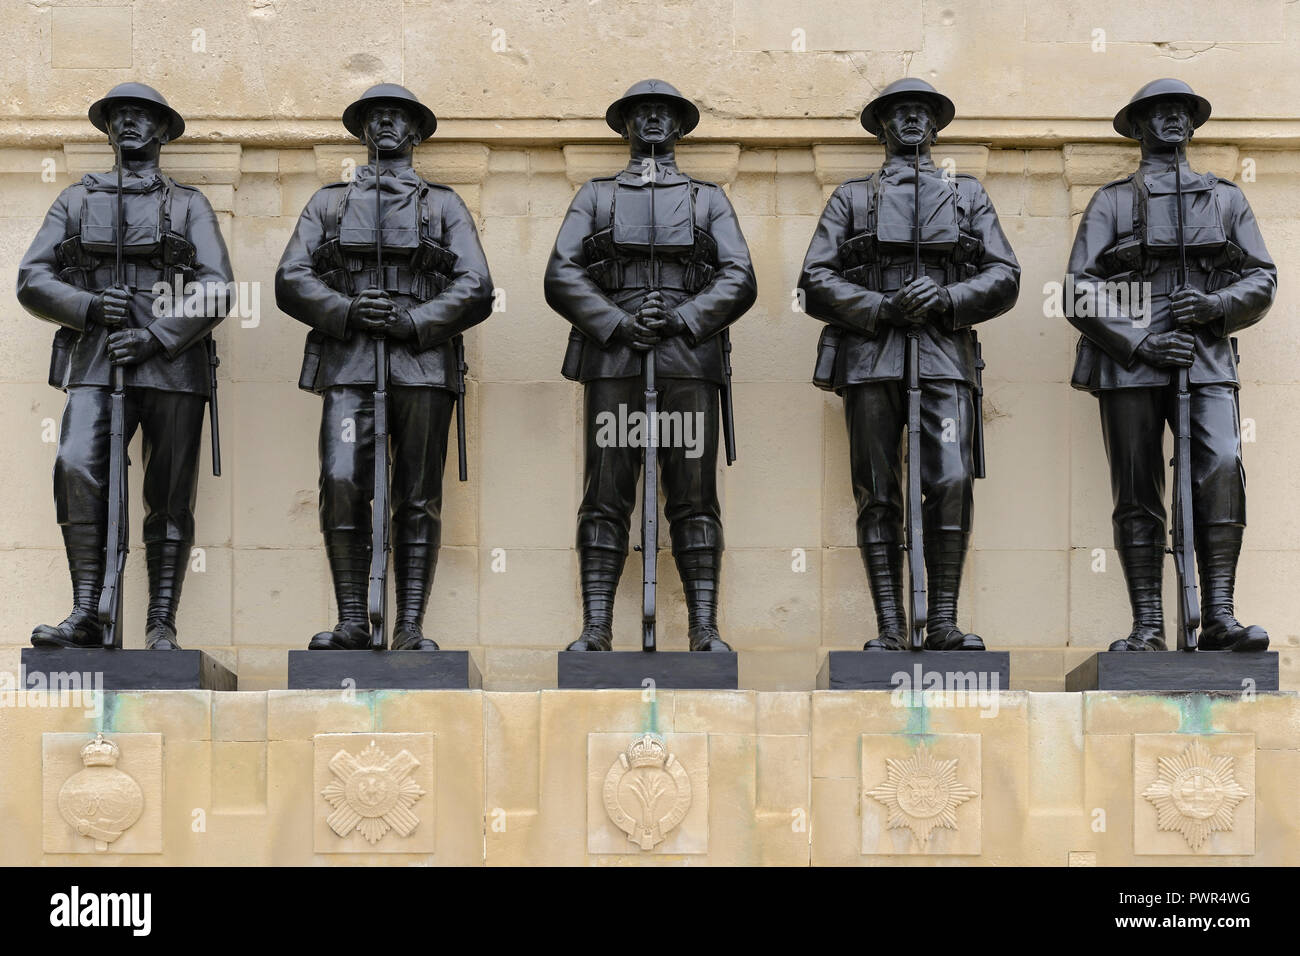 Les Gardes Memorial, St James Park, Horse Guards Parade, Londres, Royaume-Uni Photo Stock